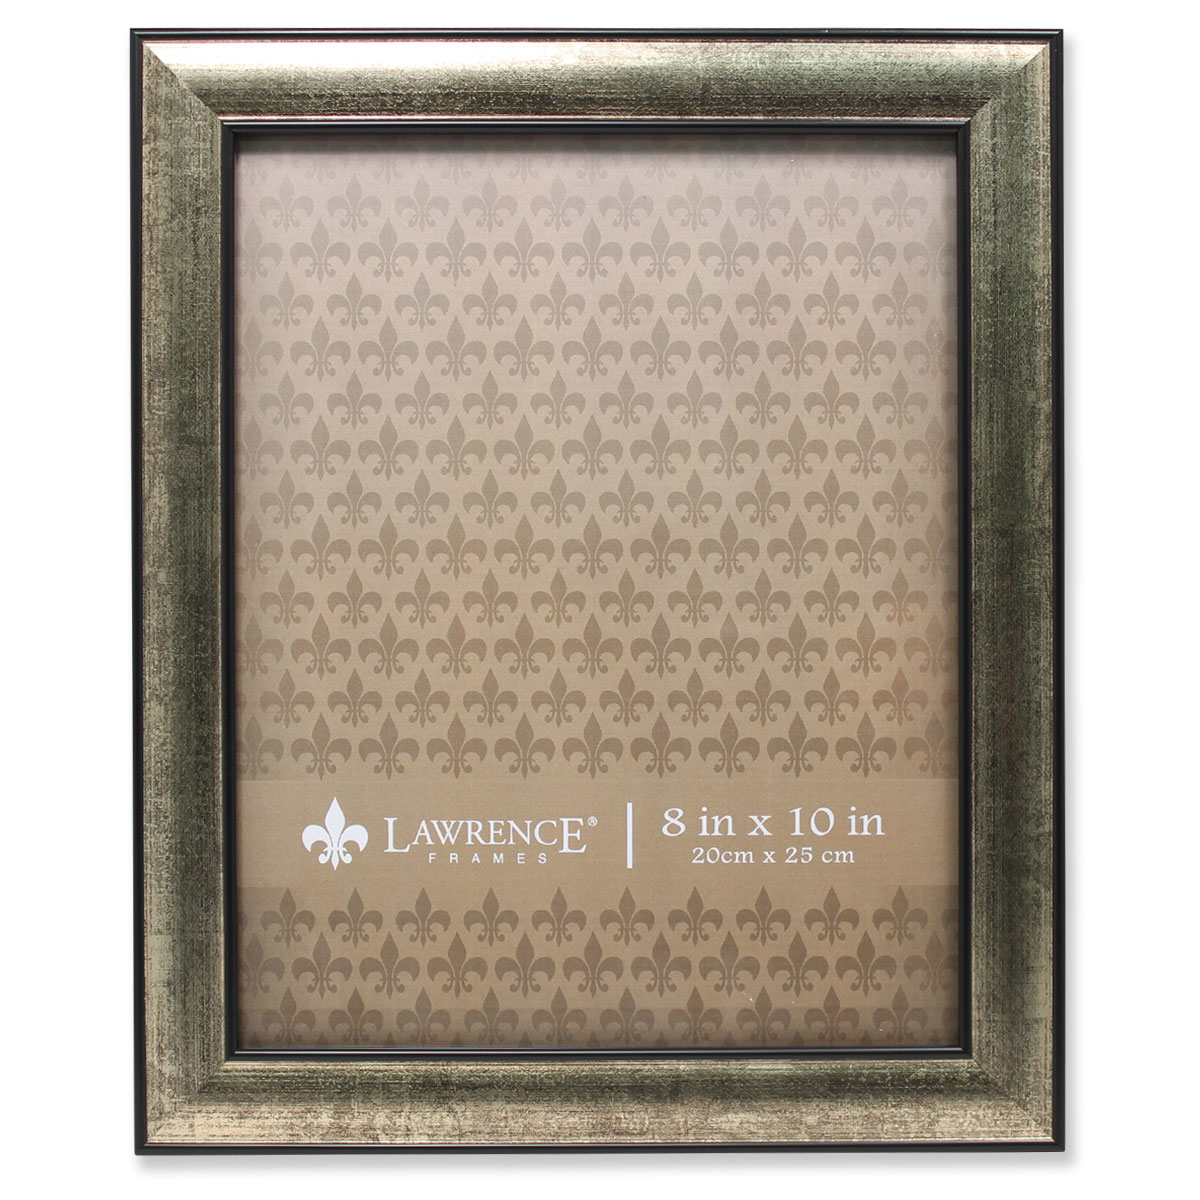 8x10 Domed Burnished Silver and Black Picture Frame by Lawrence Frames